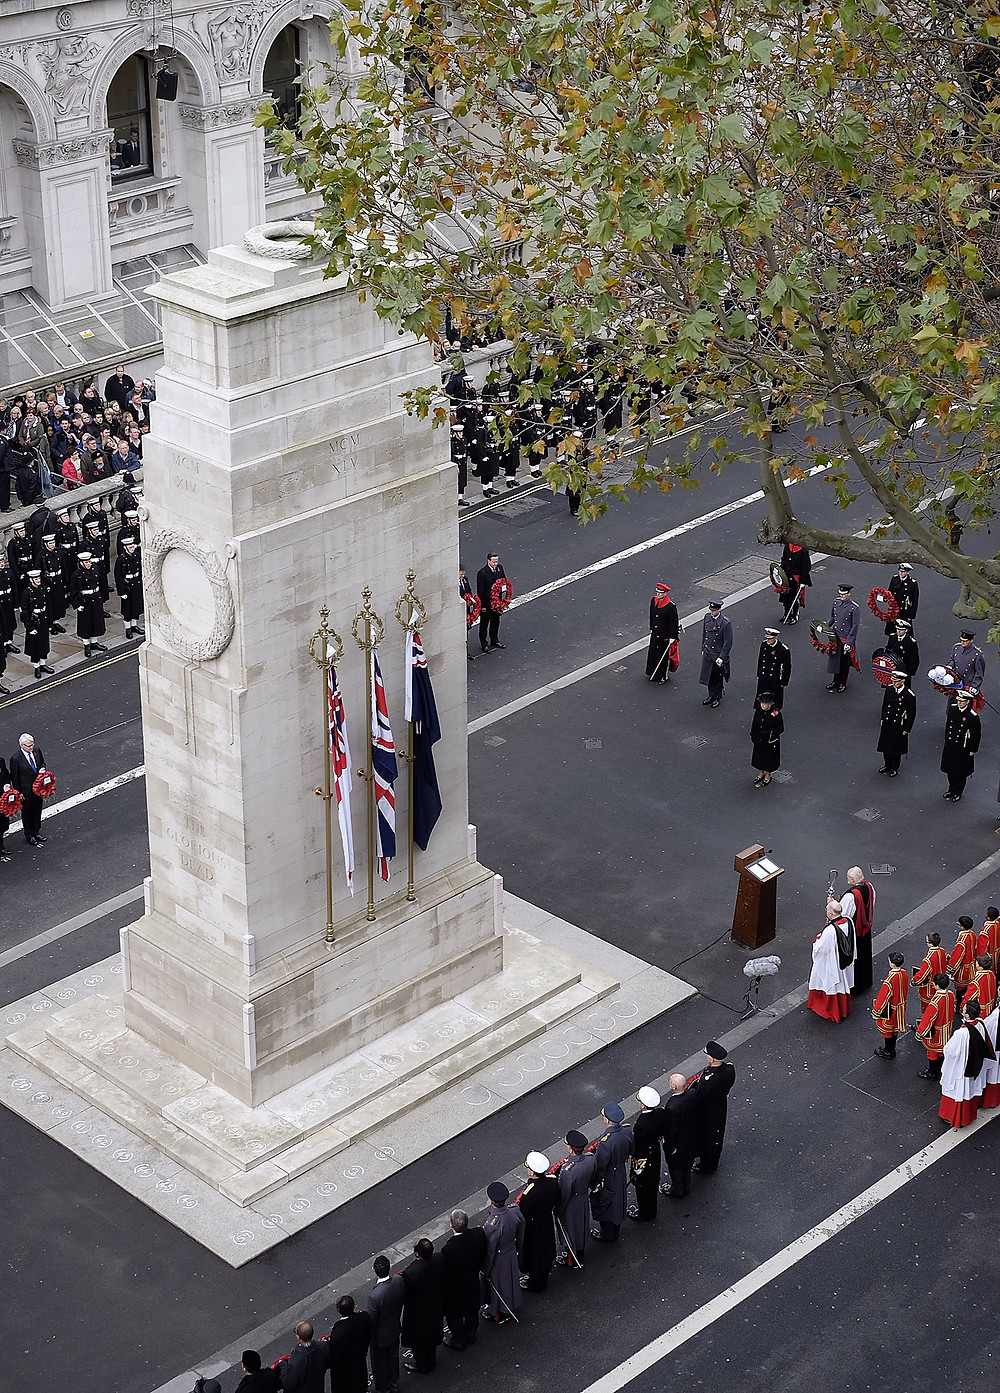 source: Photo: Sgt Si Longworth/MOD [OGL (http://www.nationalarchives.gov.uk/doc/open-government-licence/version/1/)], via Wikimedia Commons